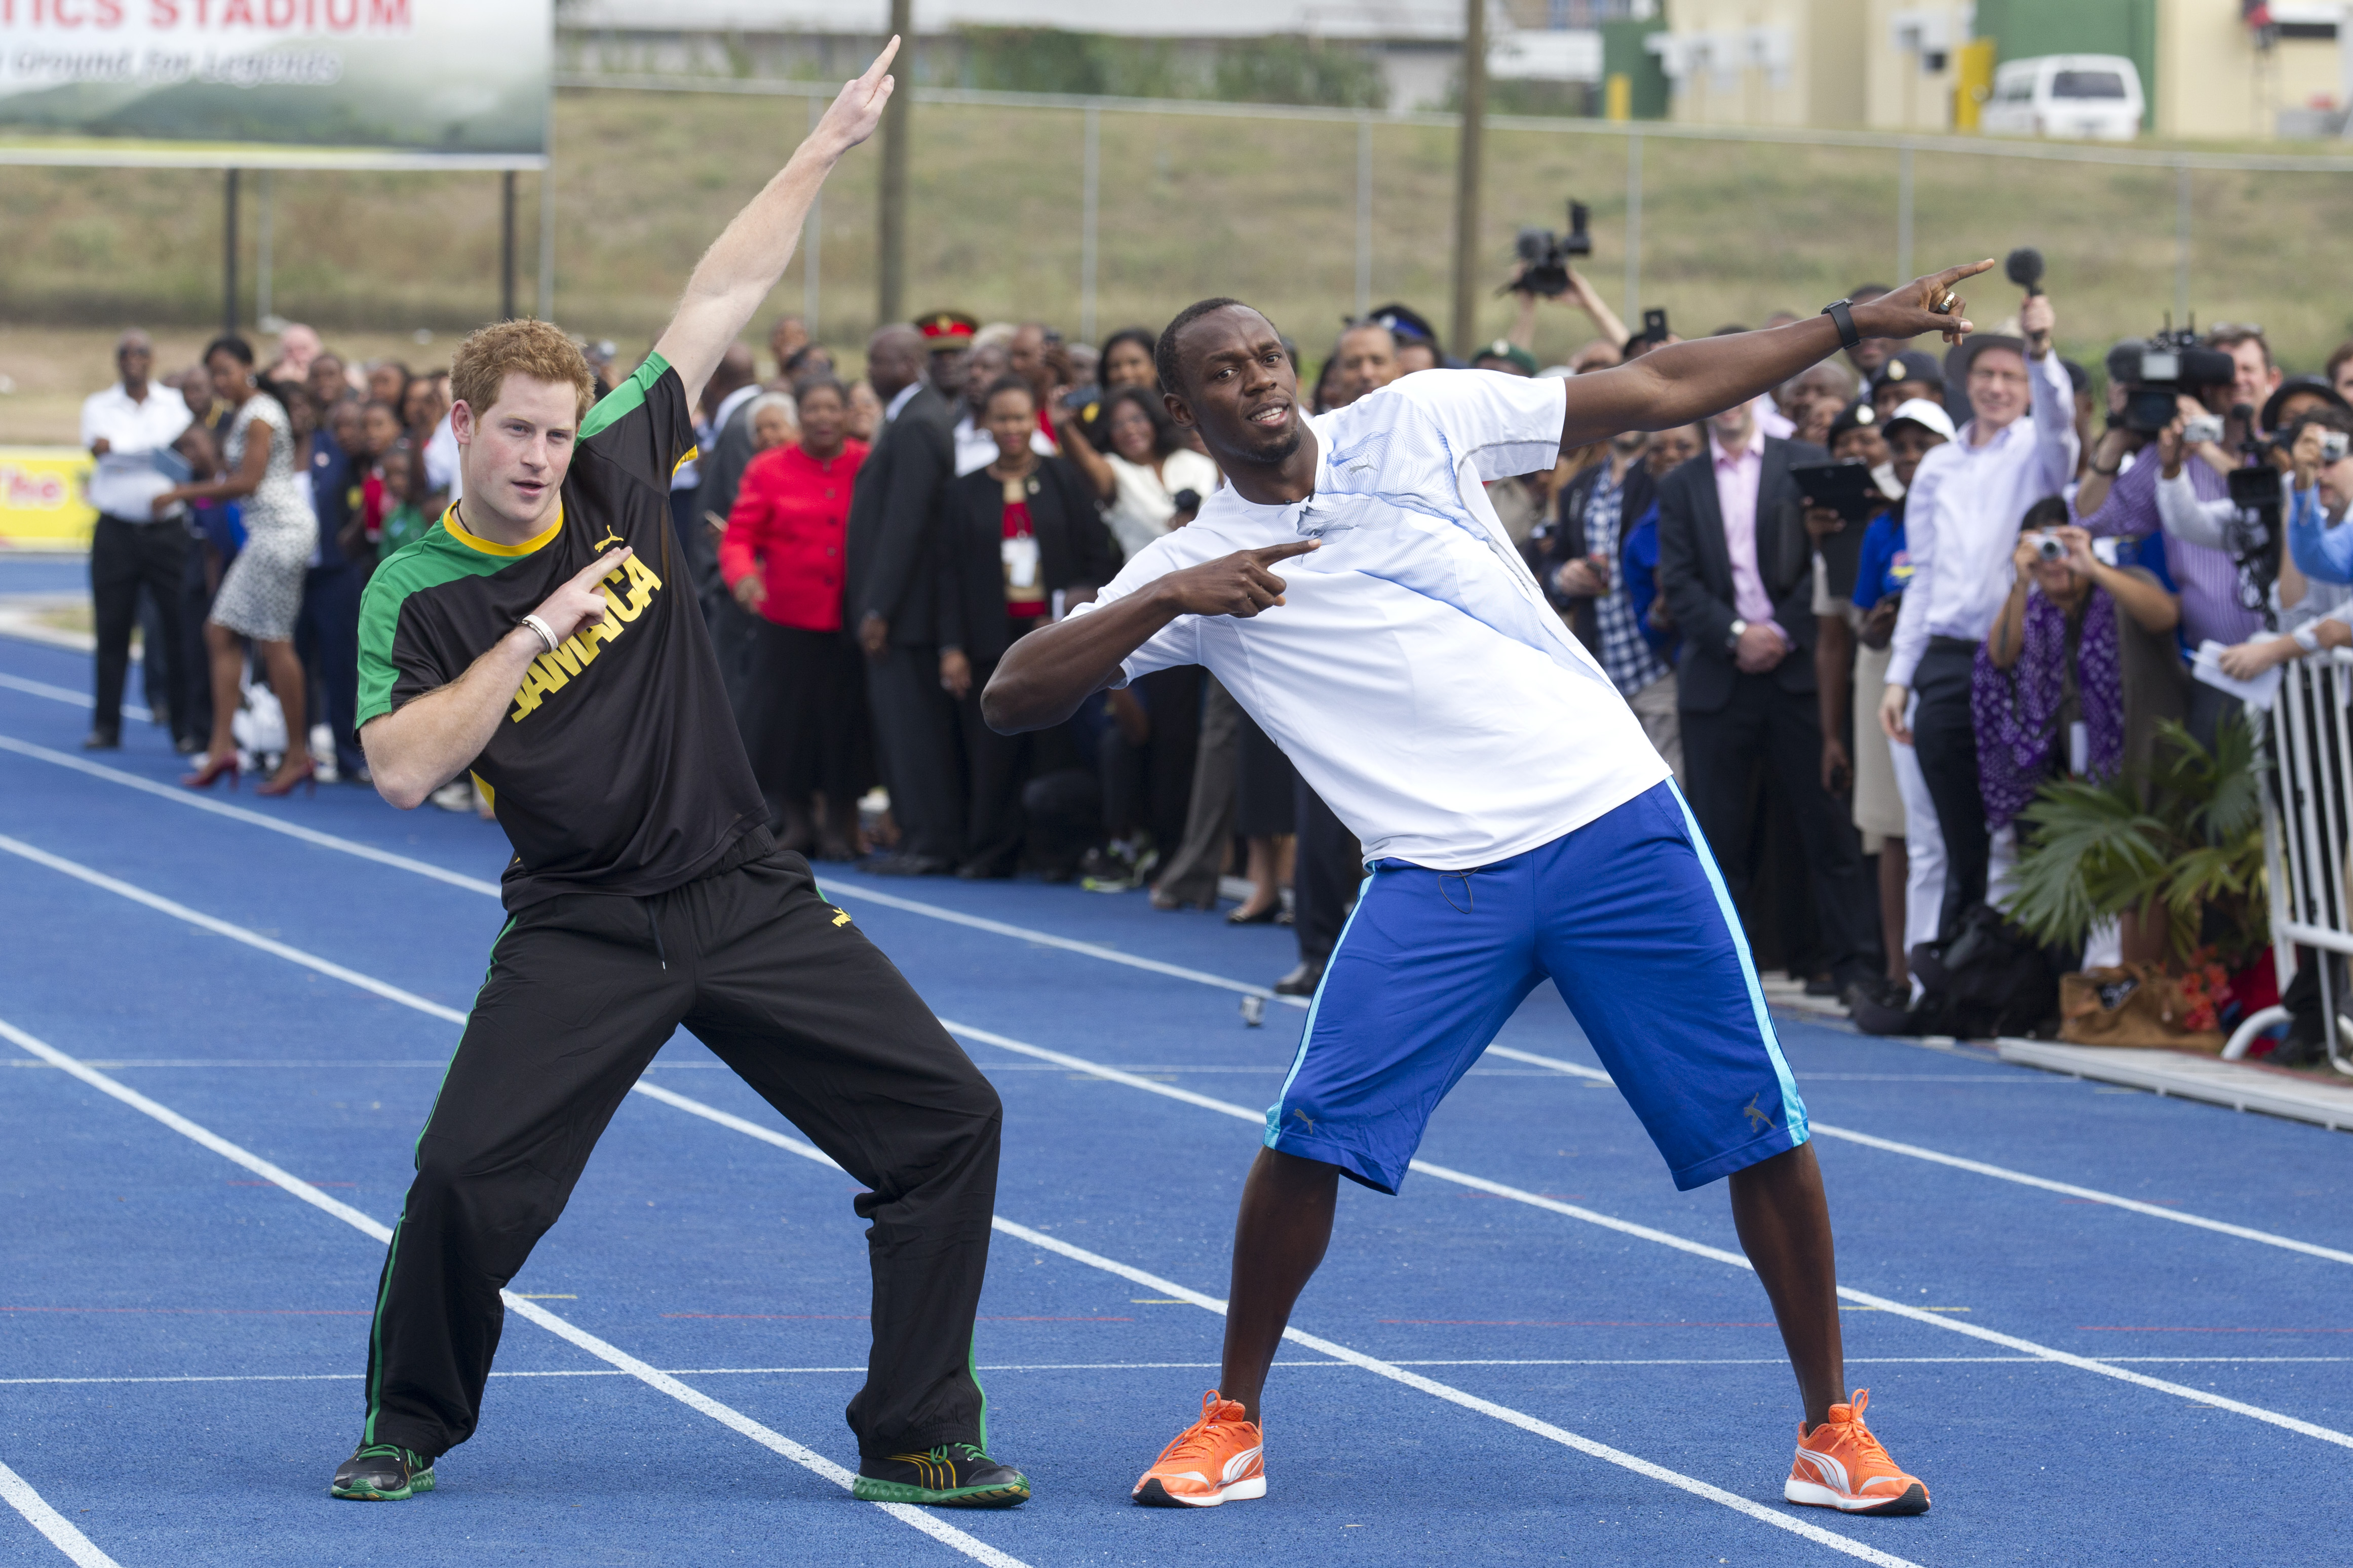 Prince Harry and Usain Bolt in Kingston, Jamaica in 2012.